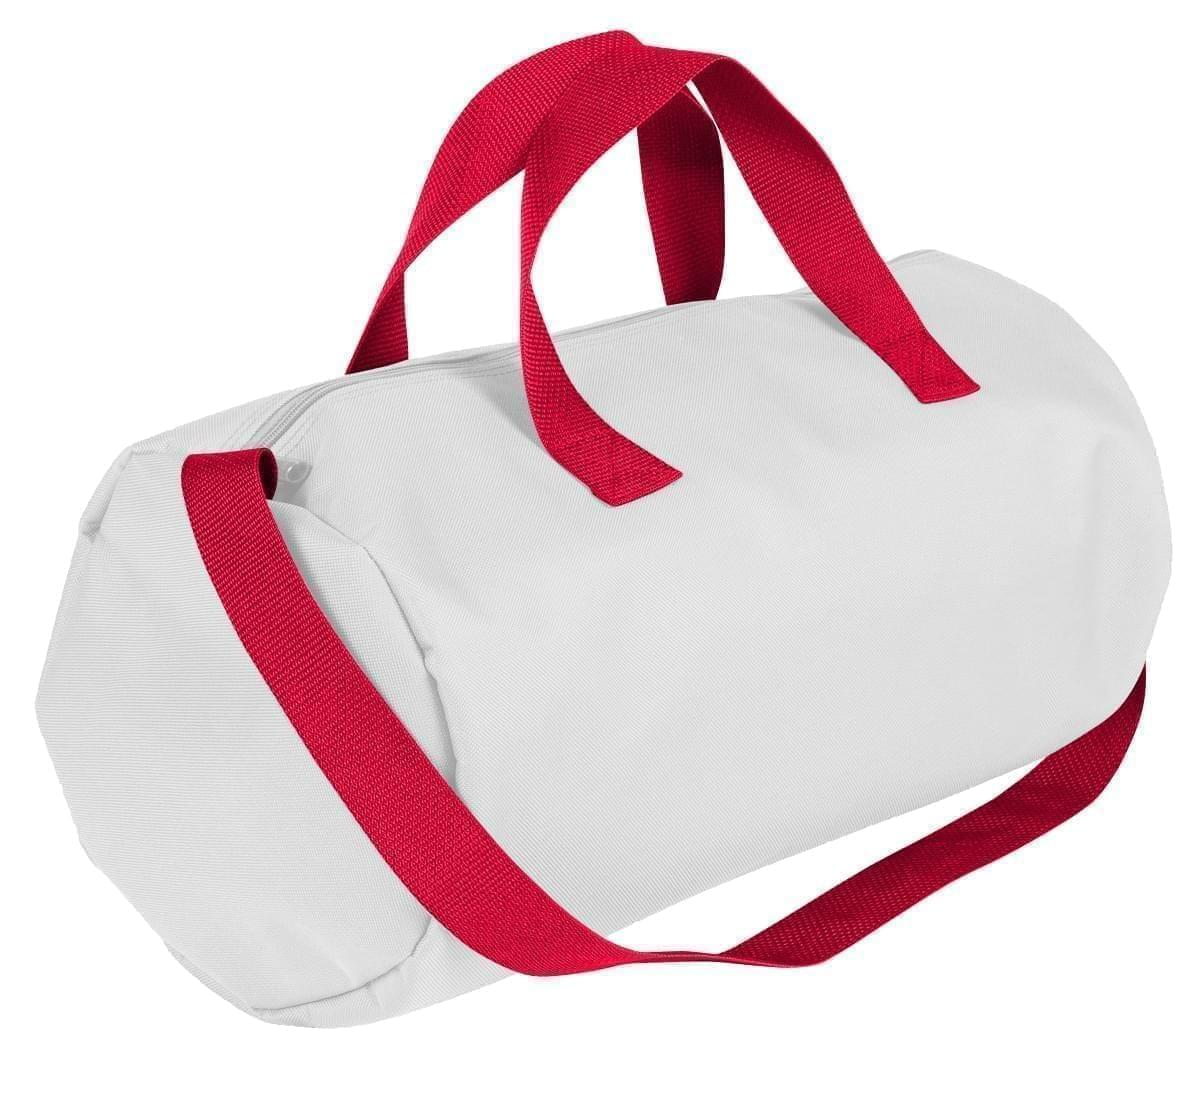 USA Made Nylon Poly Gym Roll Bags, White-Red, ROCX31AA32